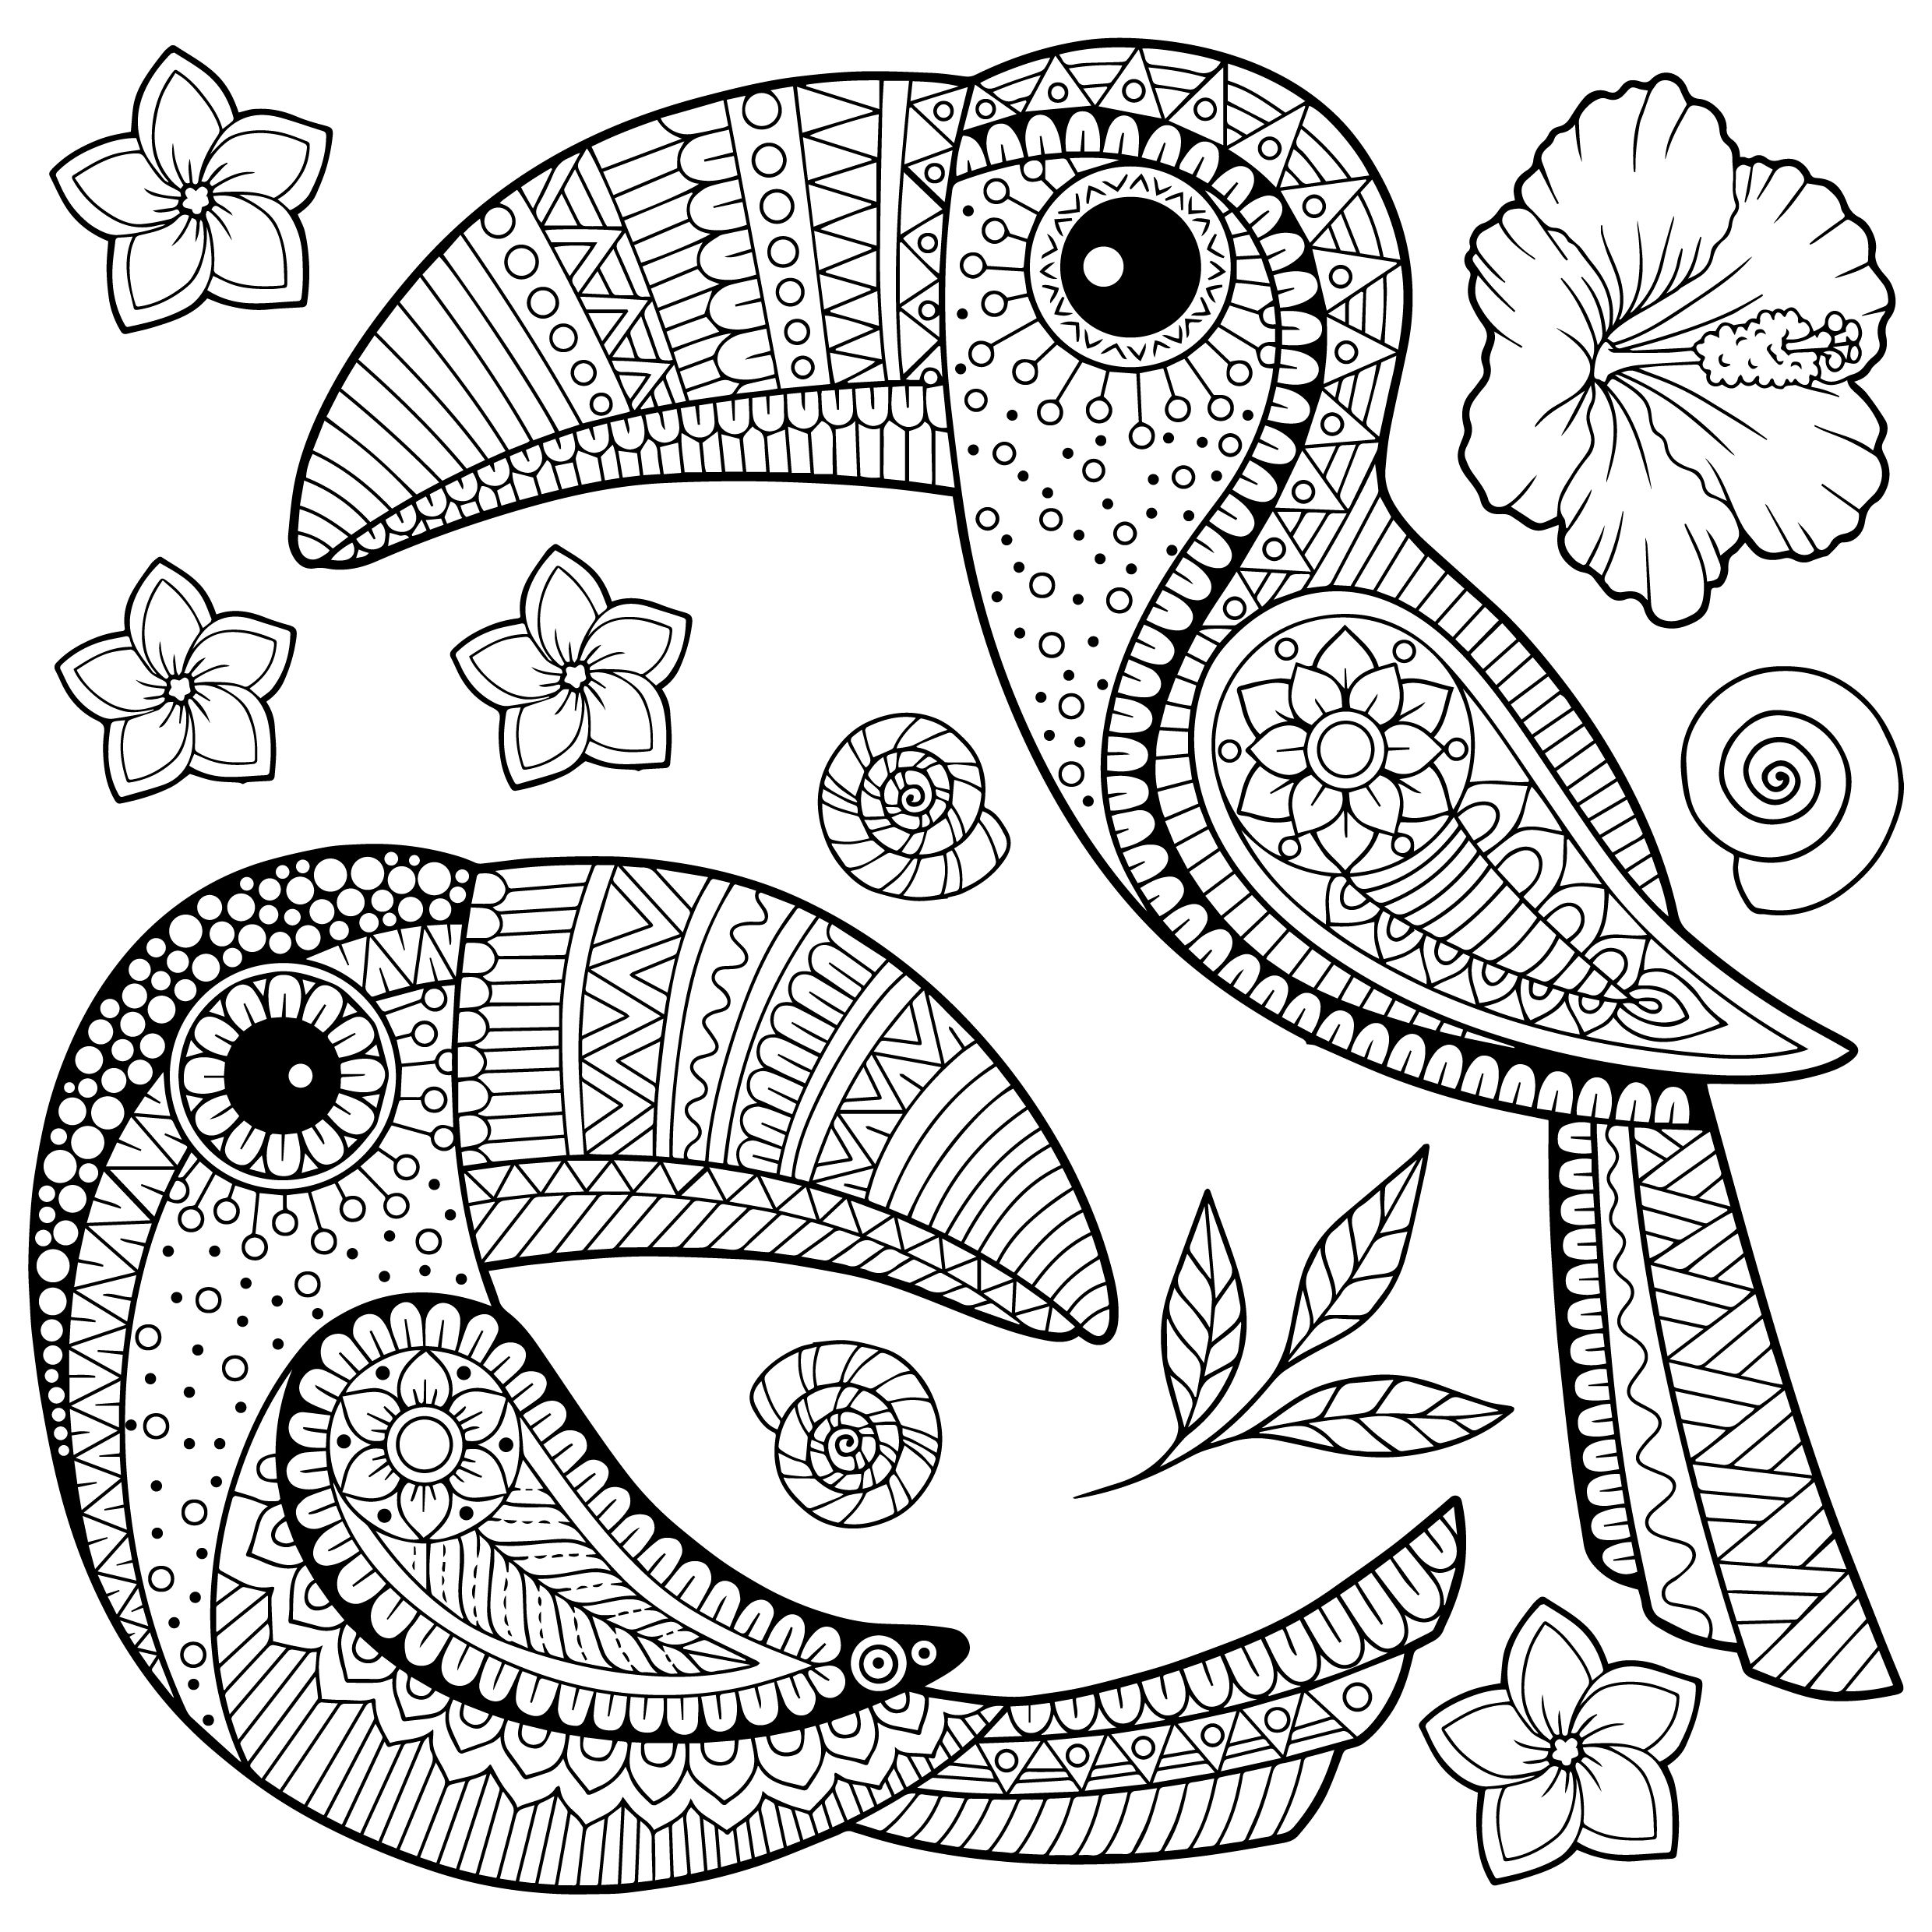 tropical bird coloring pages coloring for adults kleuren voor volwassenen colouring pages tropical coloring bird